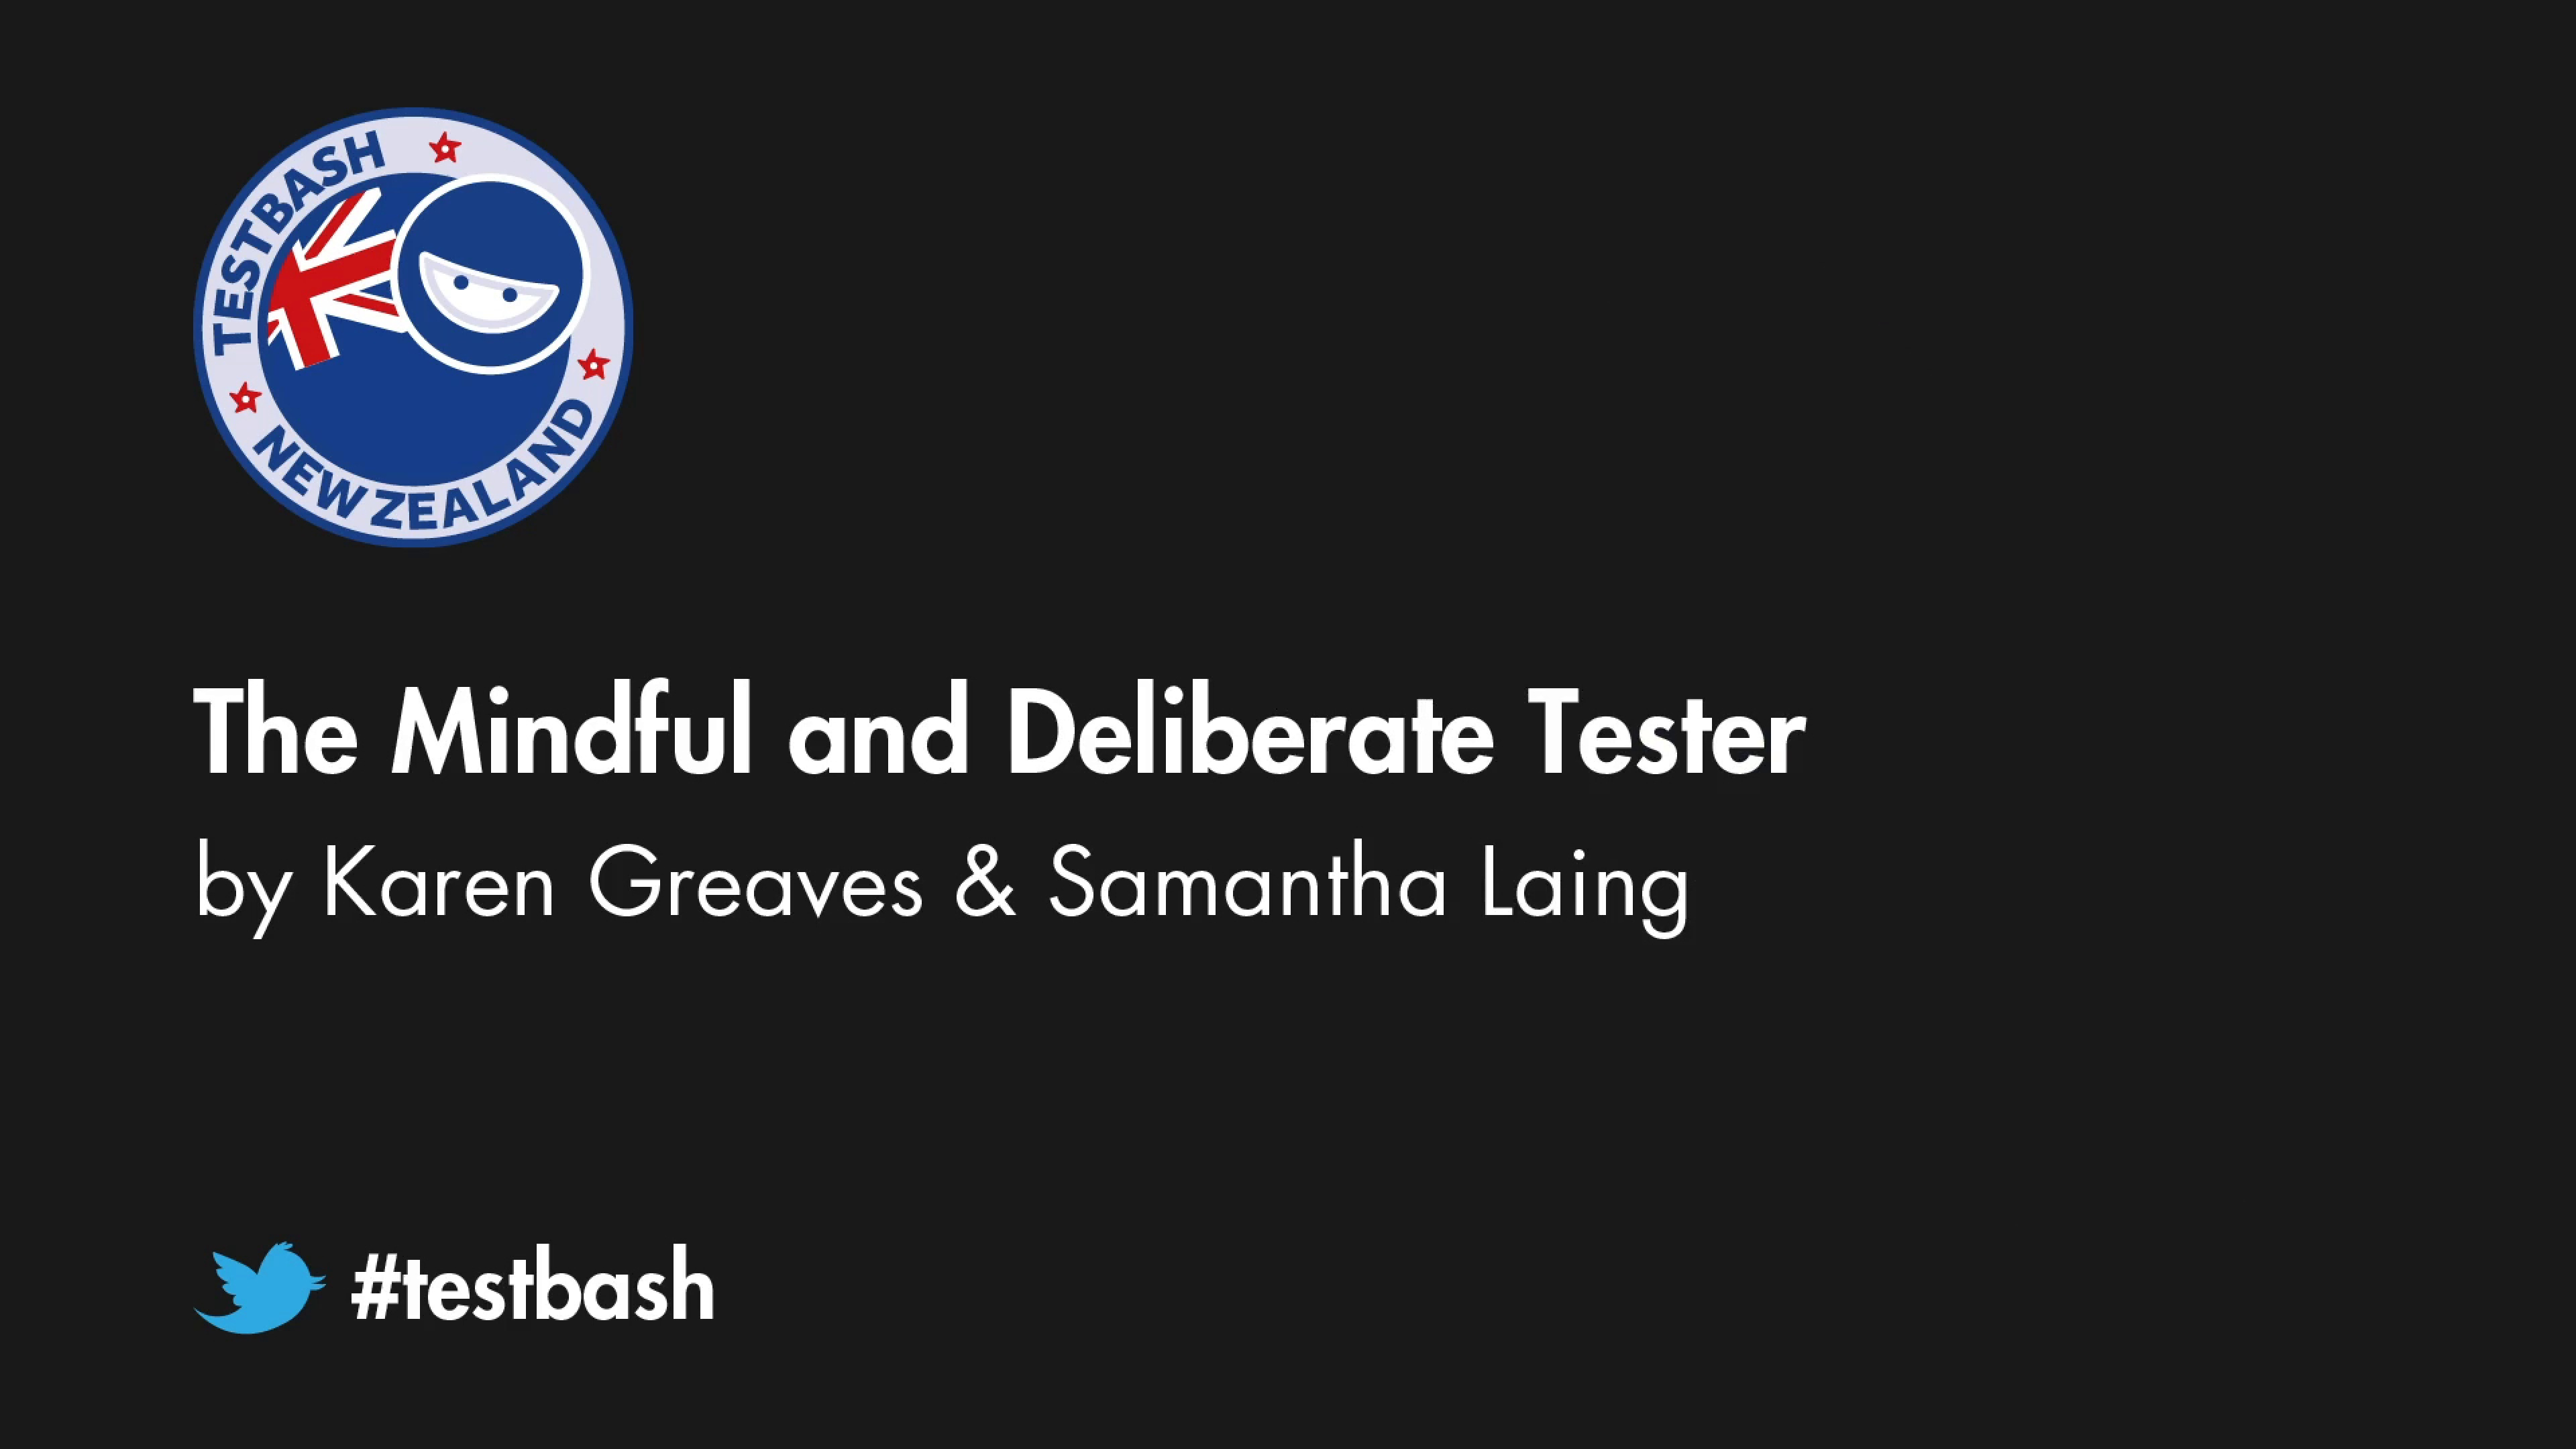 The Mindful and Deliberate Tester - Karen Greaves and Samantha Laing